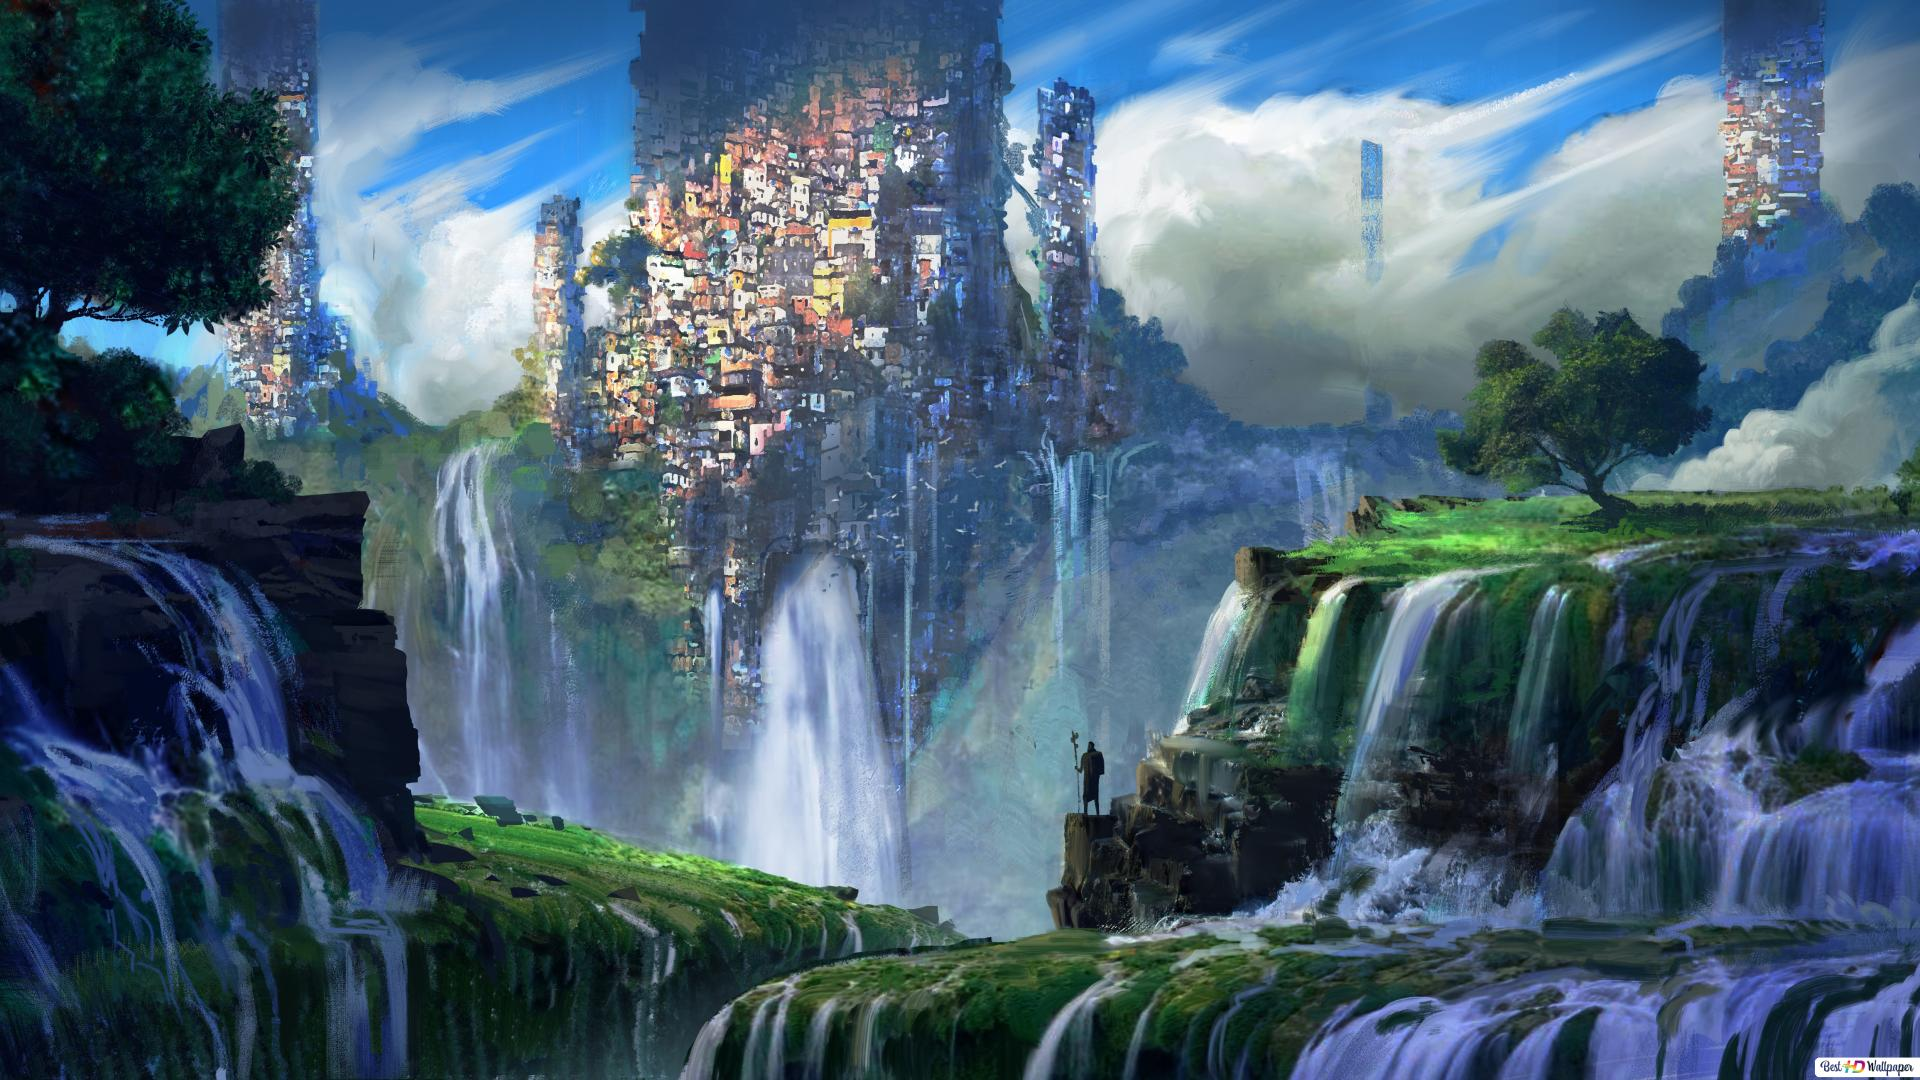 Fantasy City On Waterfall Hd Wallpaper Download